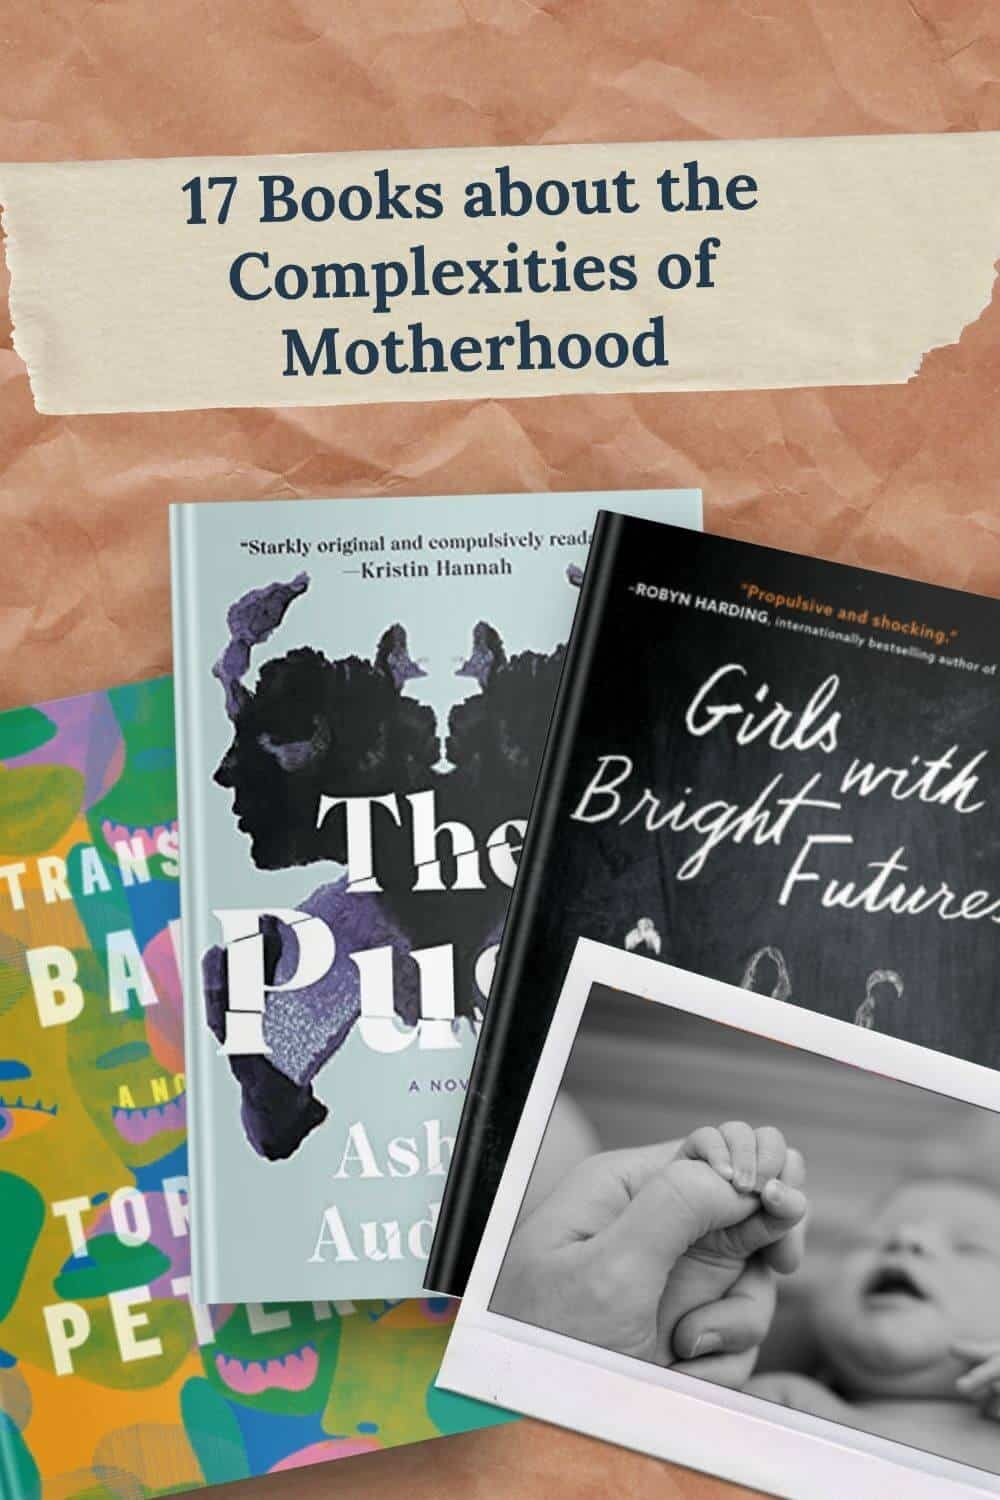 17 Books about the Complexities of Motherhood